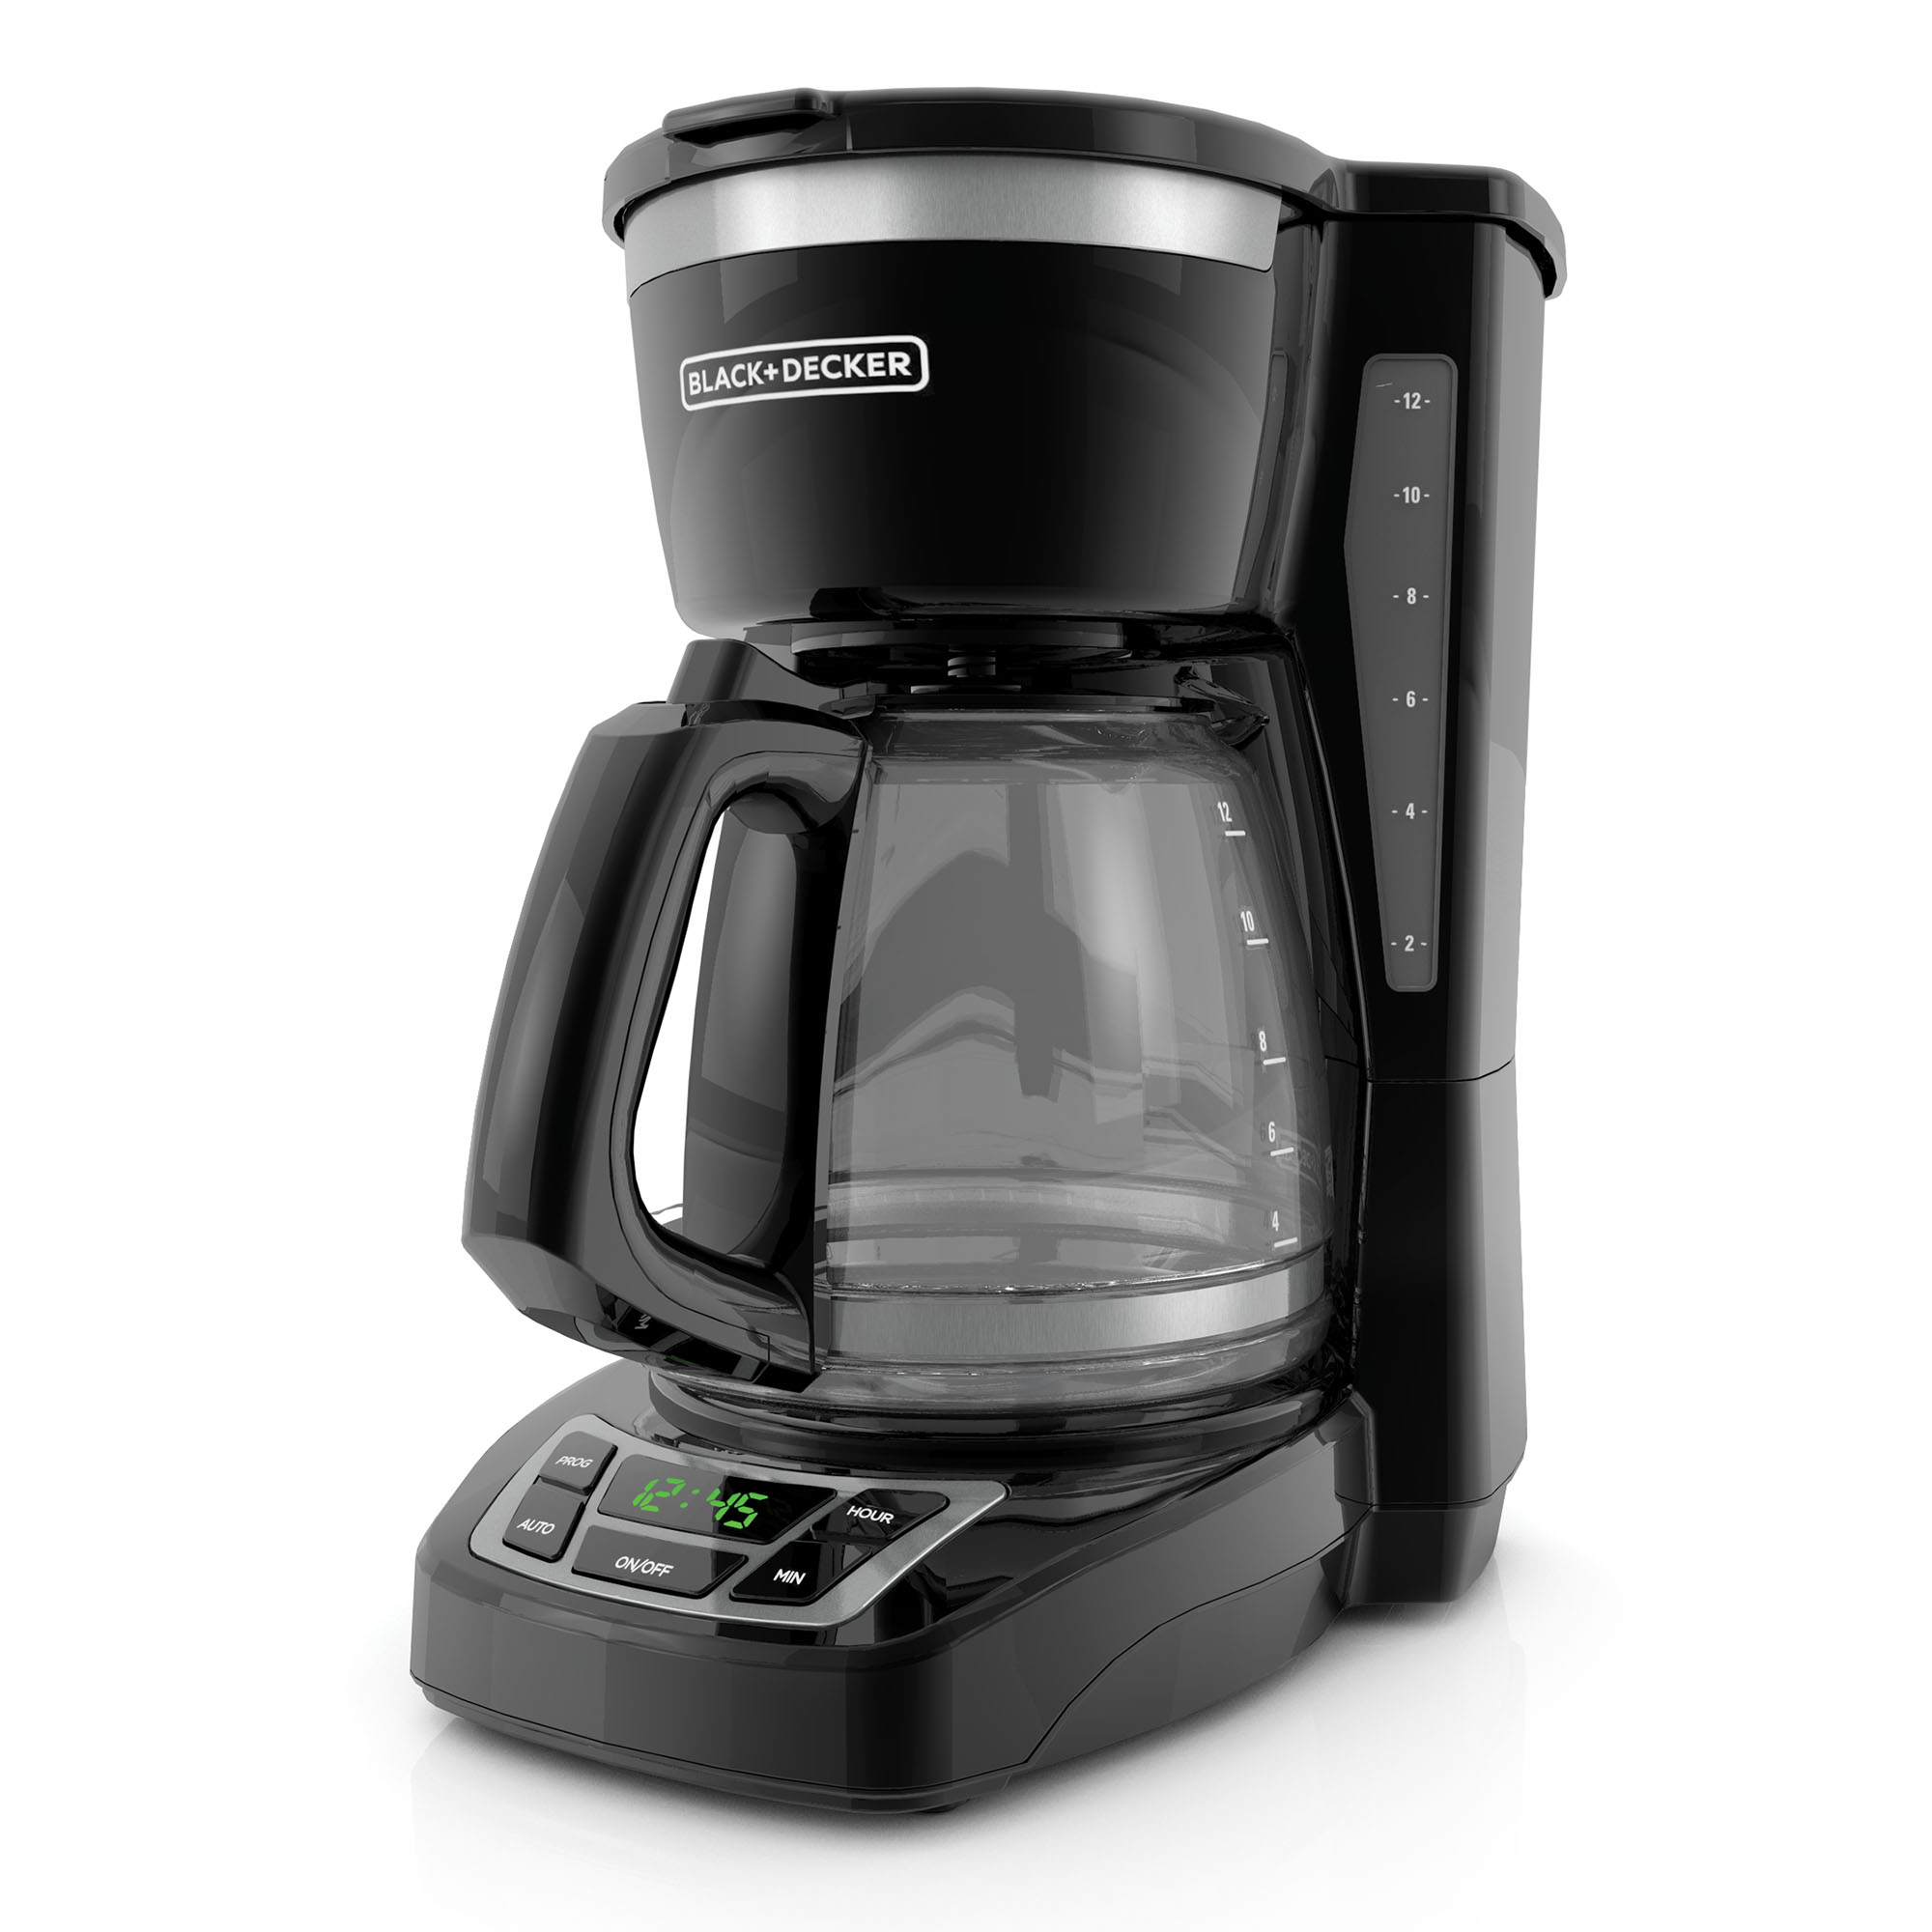 BLACK+DECKER 12-Cup* Programmable Coffee Maker, Black, CM1160B